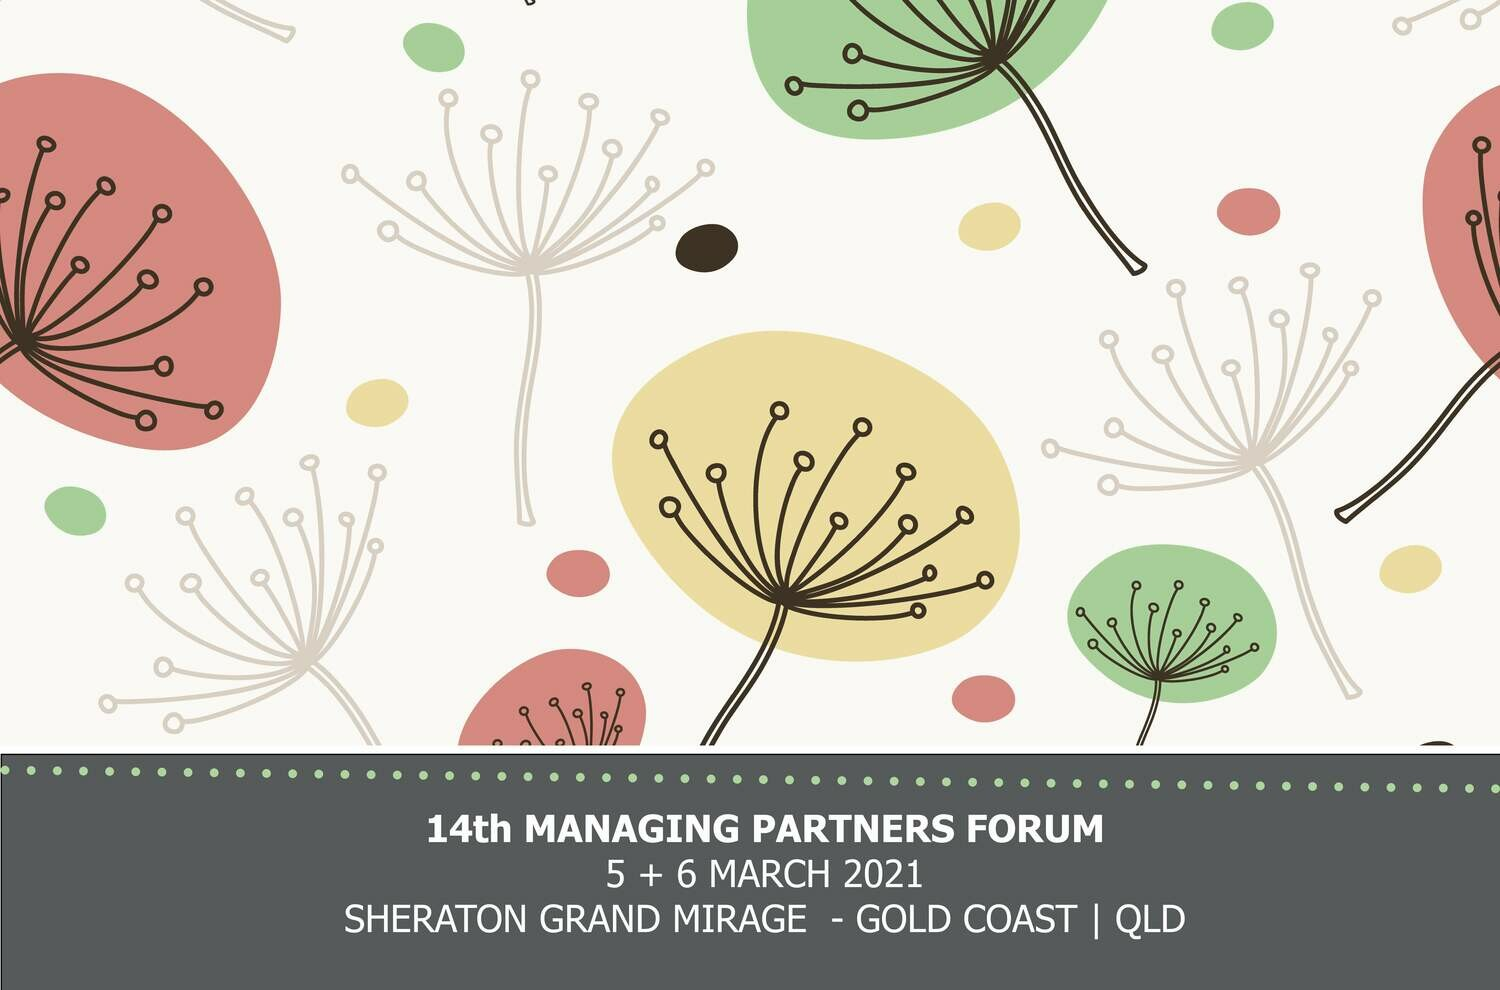 14th MANAGING PARTNERS FORUM